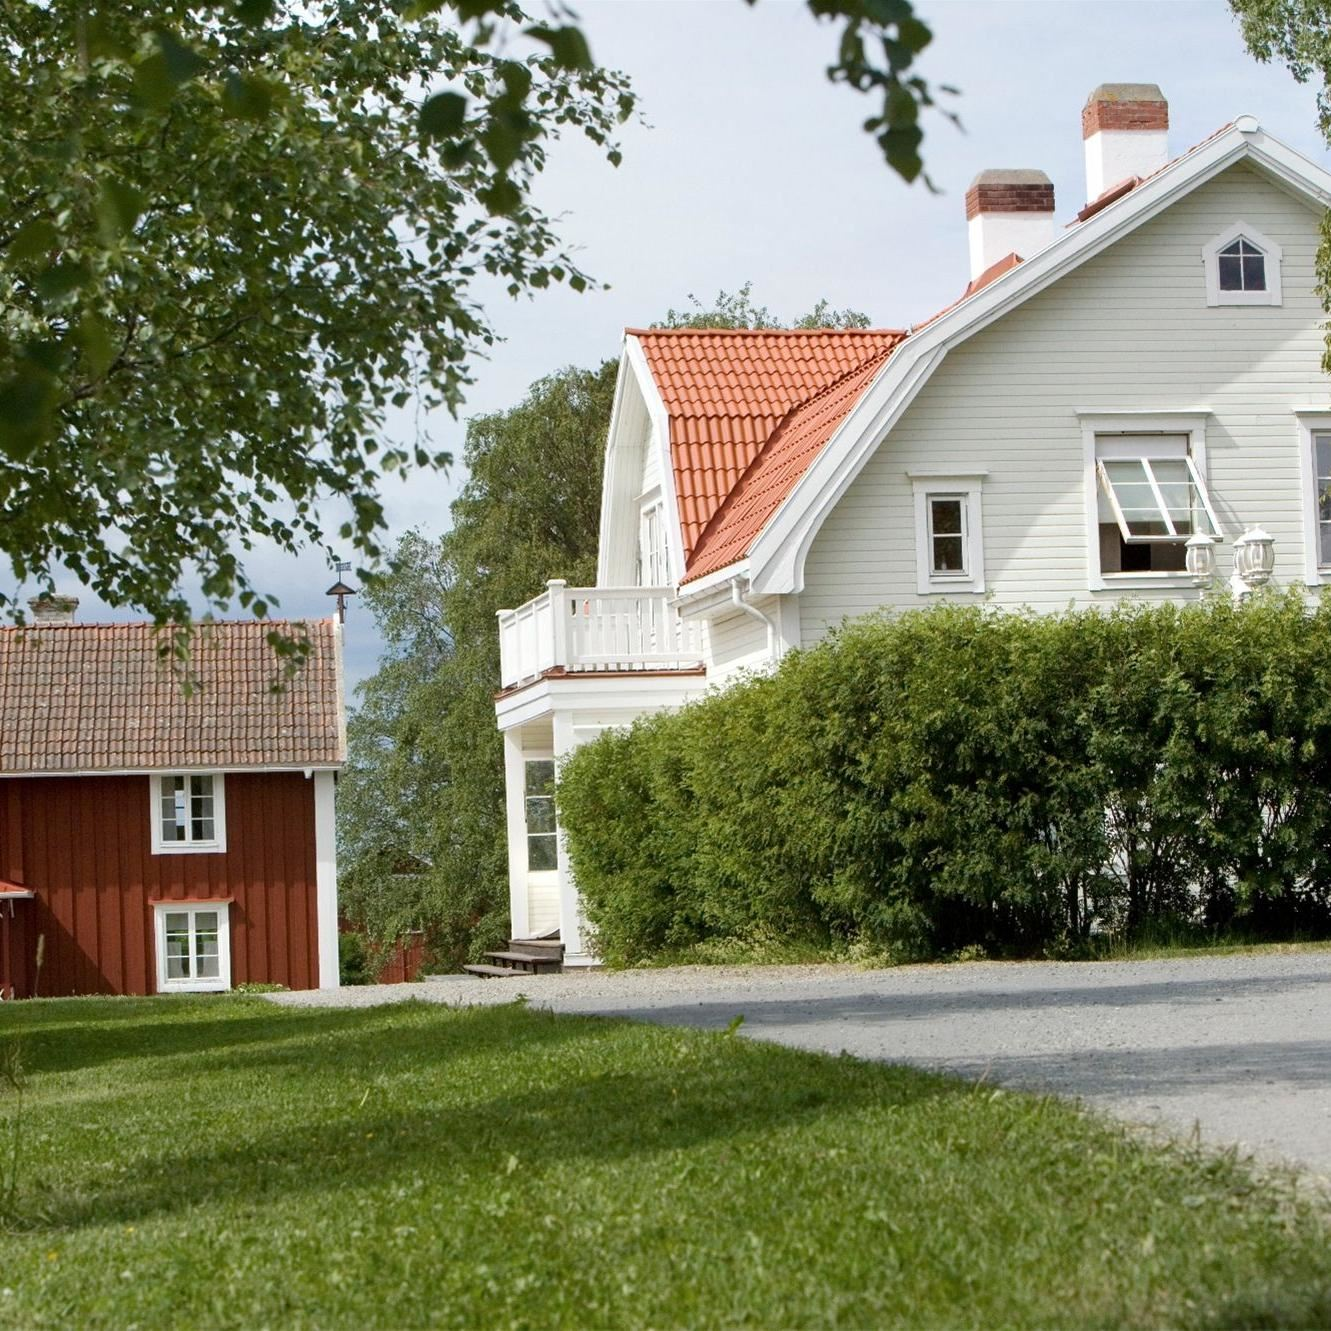 Brunkulla Gård - Ecological farm